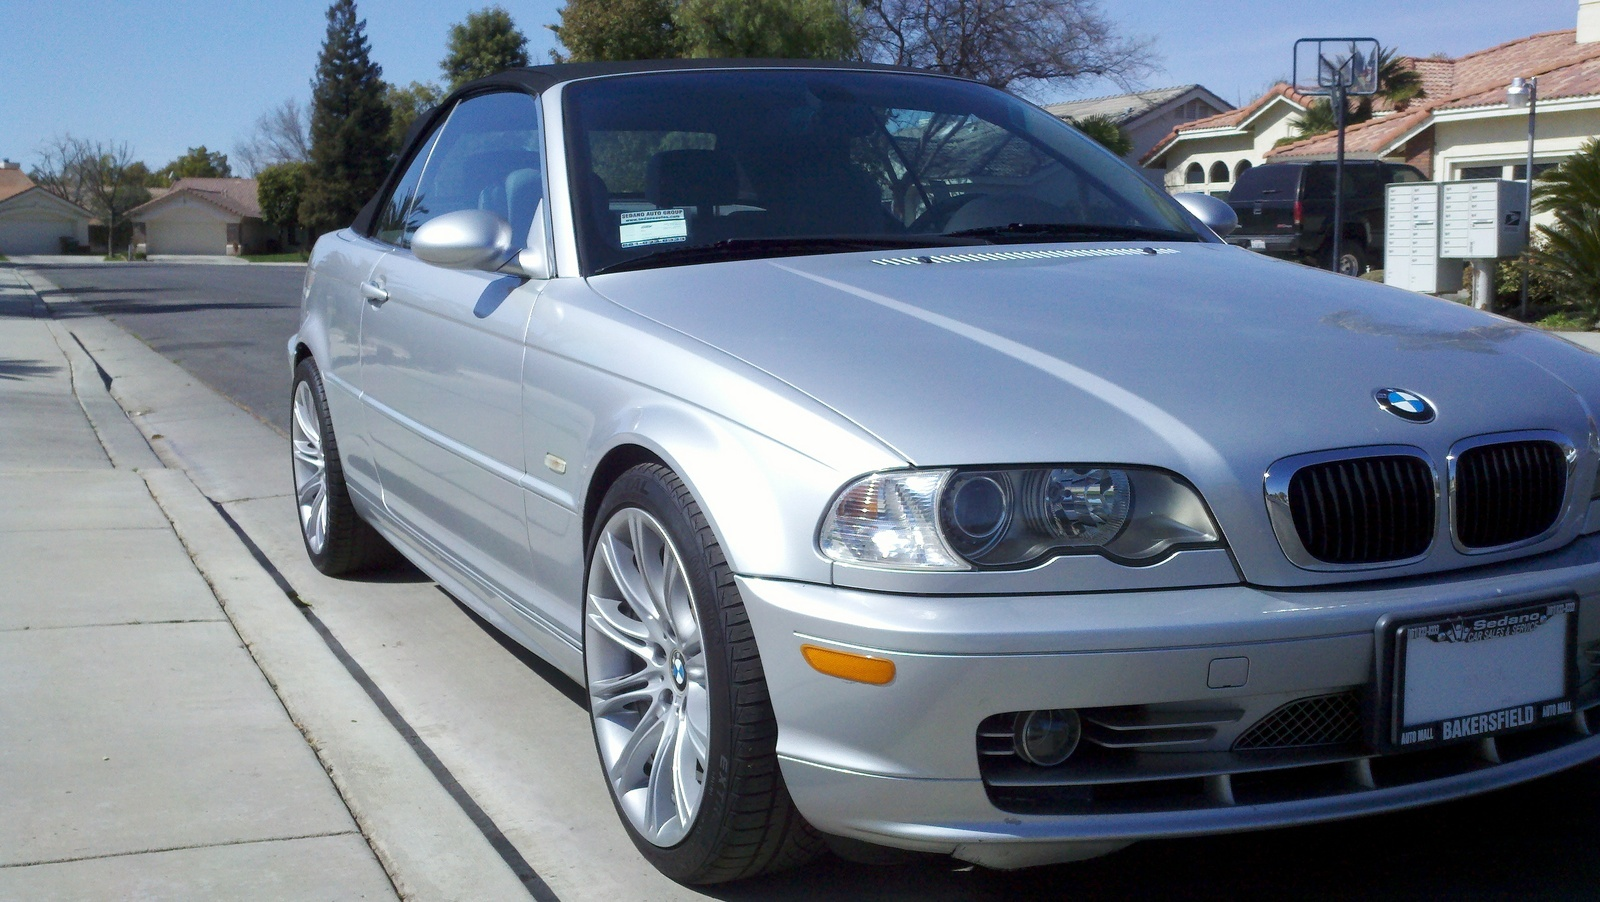 bmw 3 series questions i just bought 330 it has 89 000 miles and i have no maintenance recor. Black Bedroom Furniture Sets. Home Design Ideas